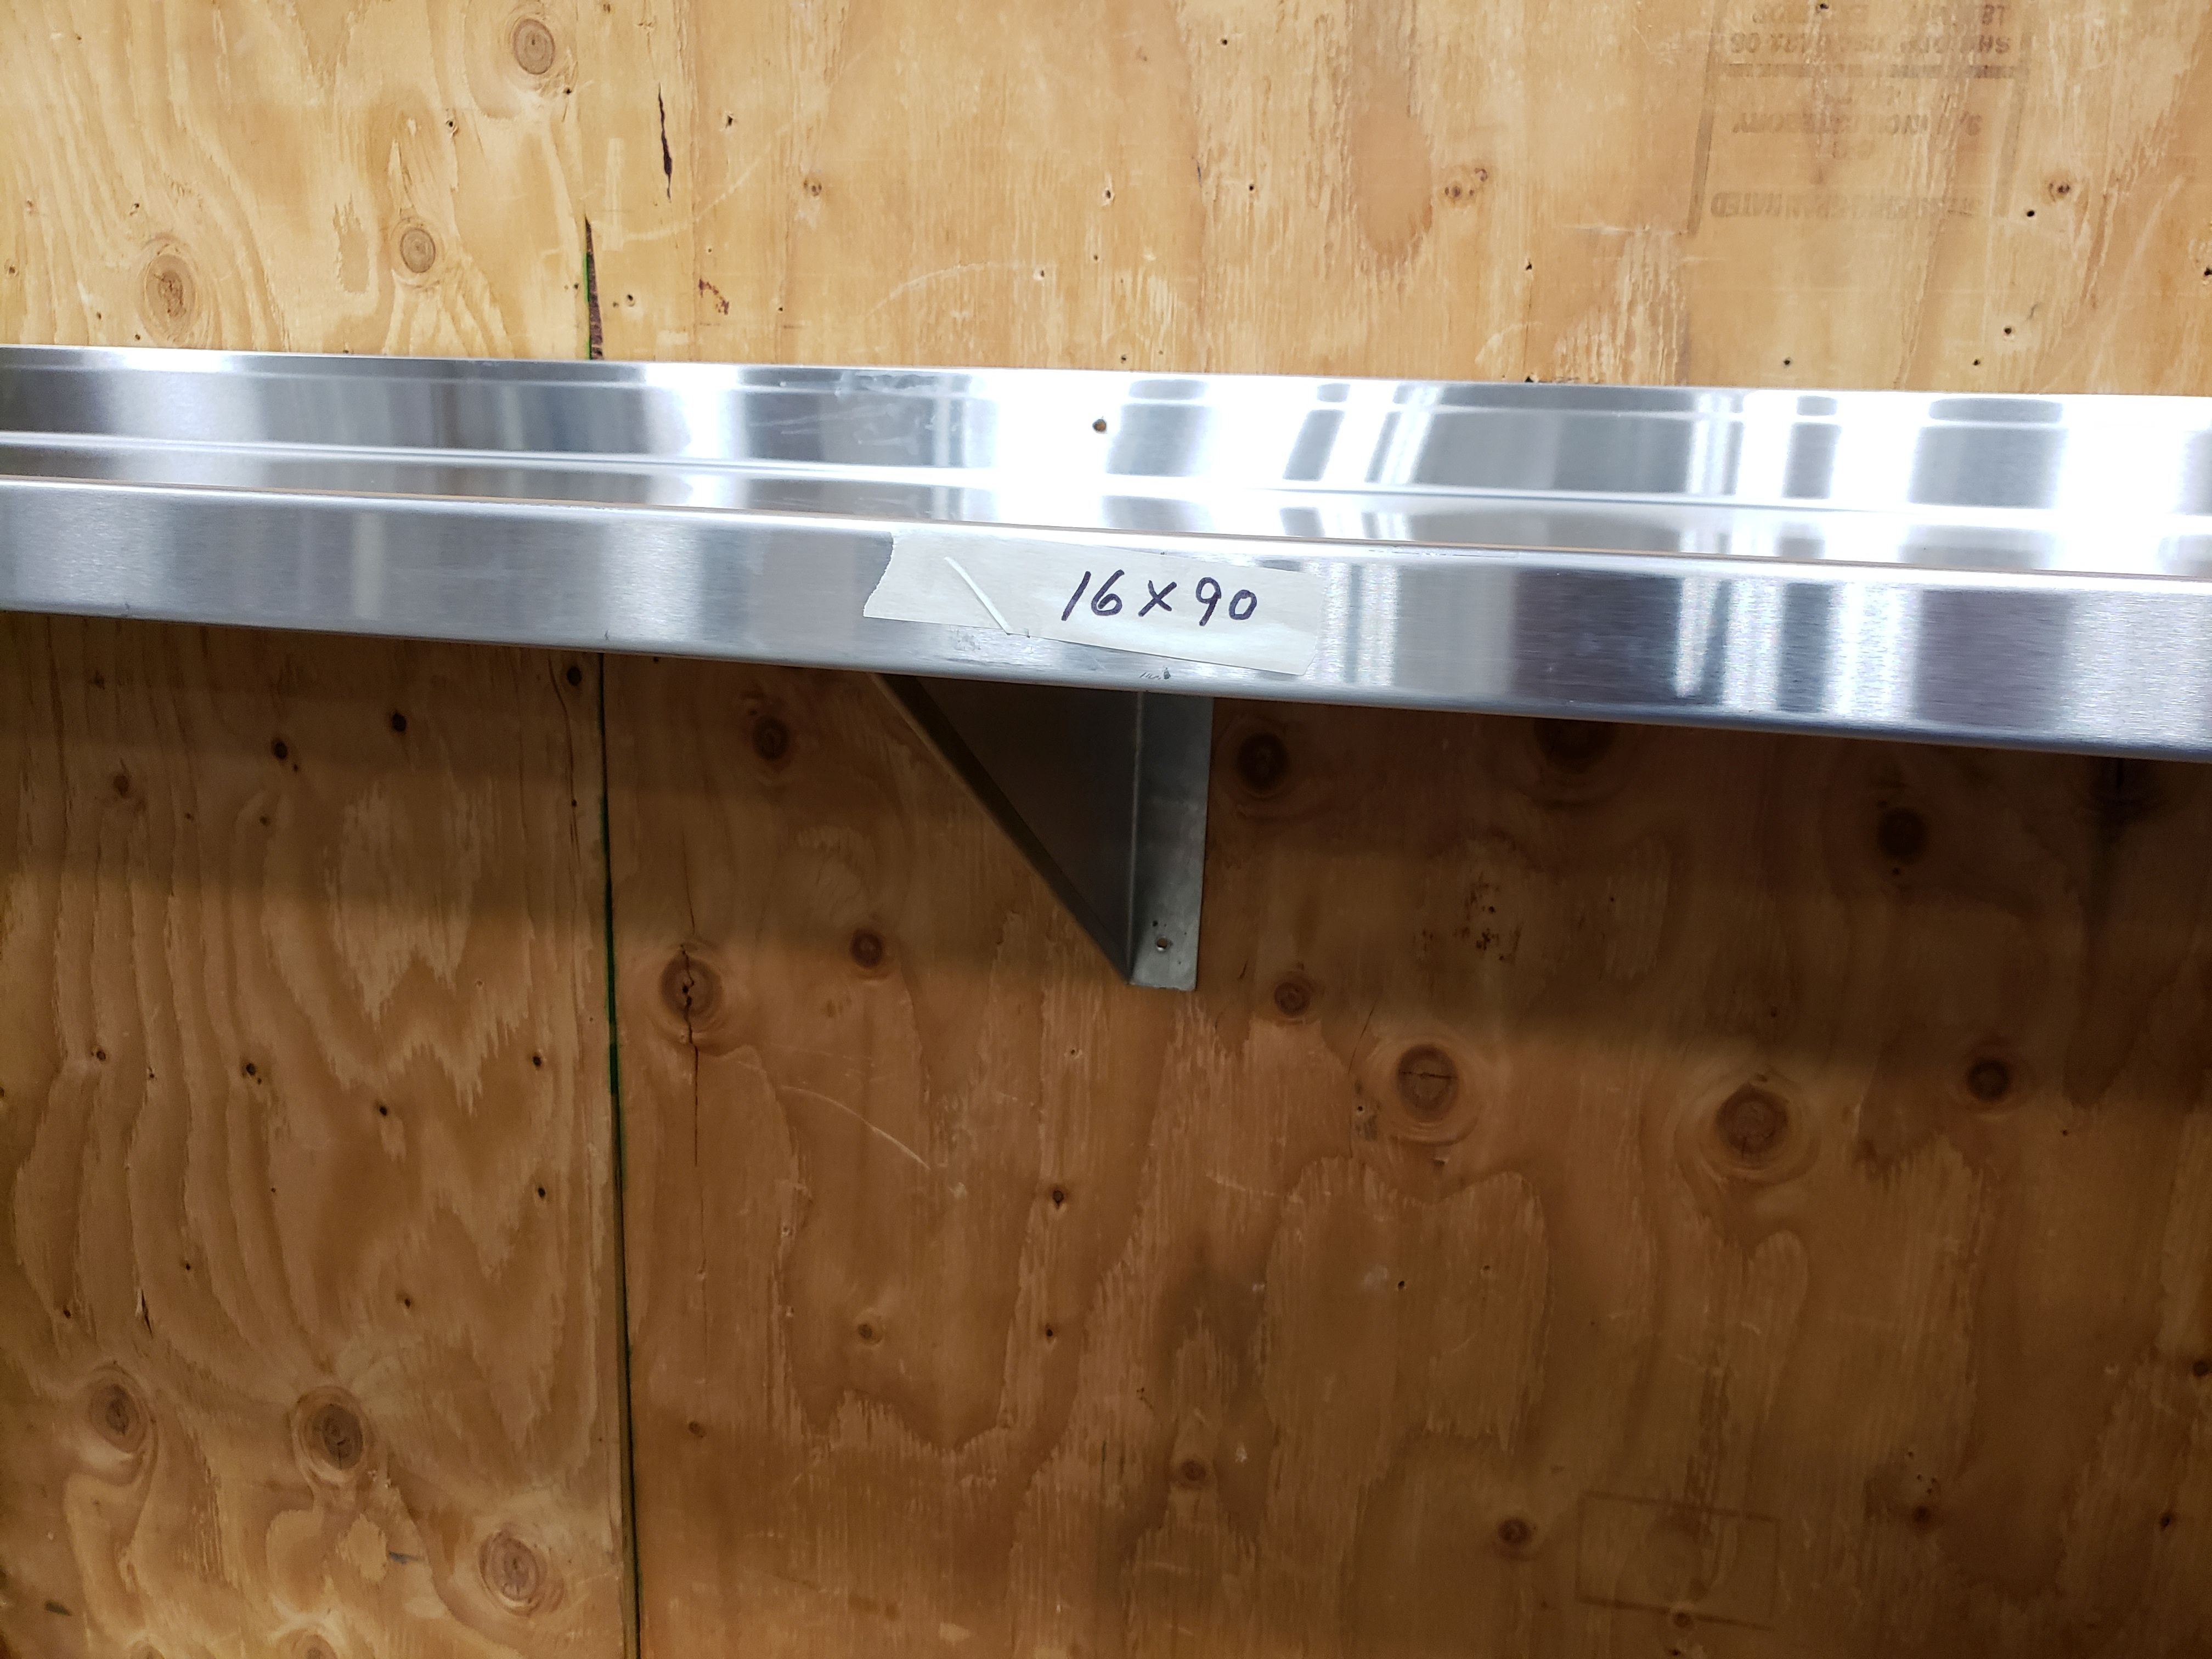 "Lot 29 - 16"" x 90"" Stainless Steel Wall Shelf"